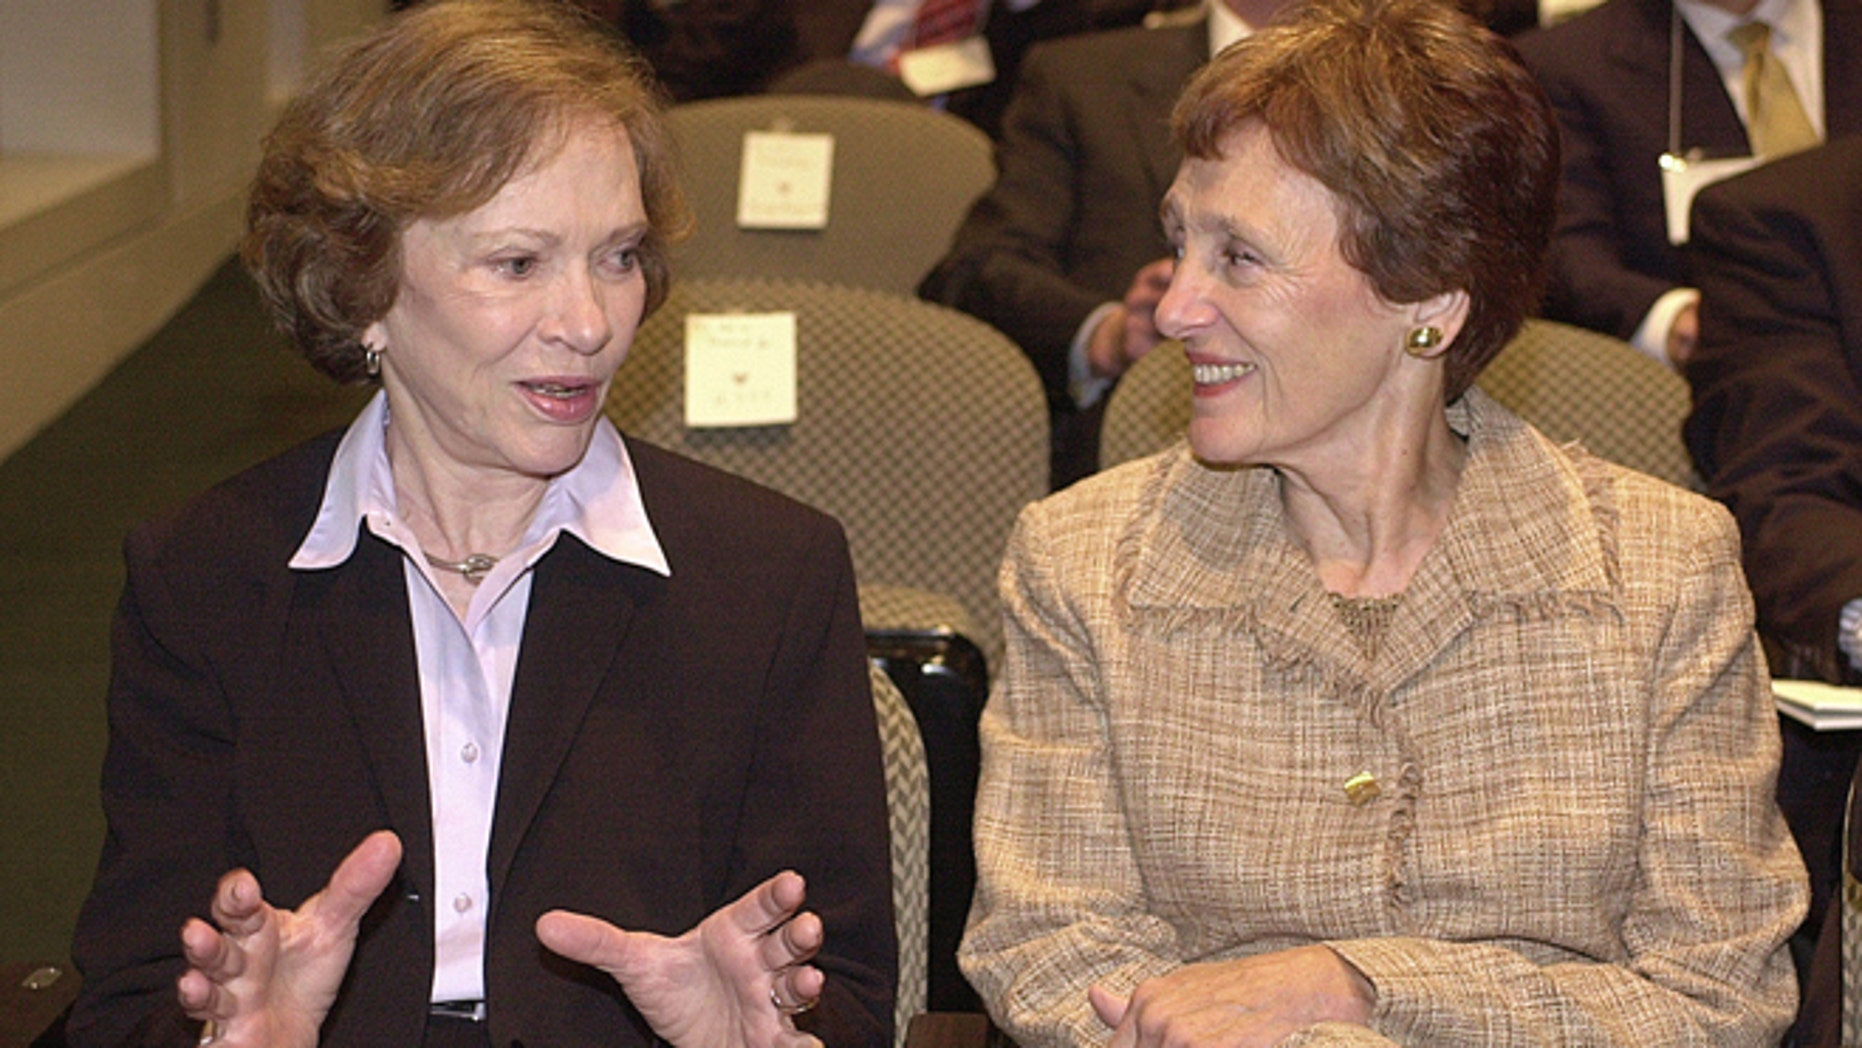 Sept. 17, 2003: Former first lady Rosalynn Carter, left, and wife of former Vice President Walter Mondale, Joan Mondale, chat prior to the opening of a symposium for the 25th anniversary of the Camp David peace accords between Israel and Egypt.